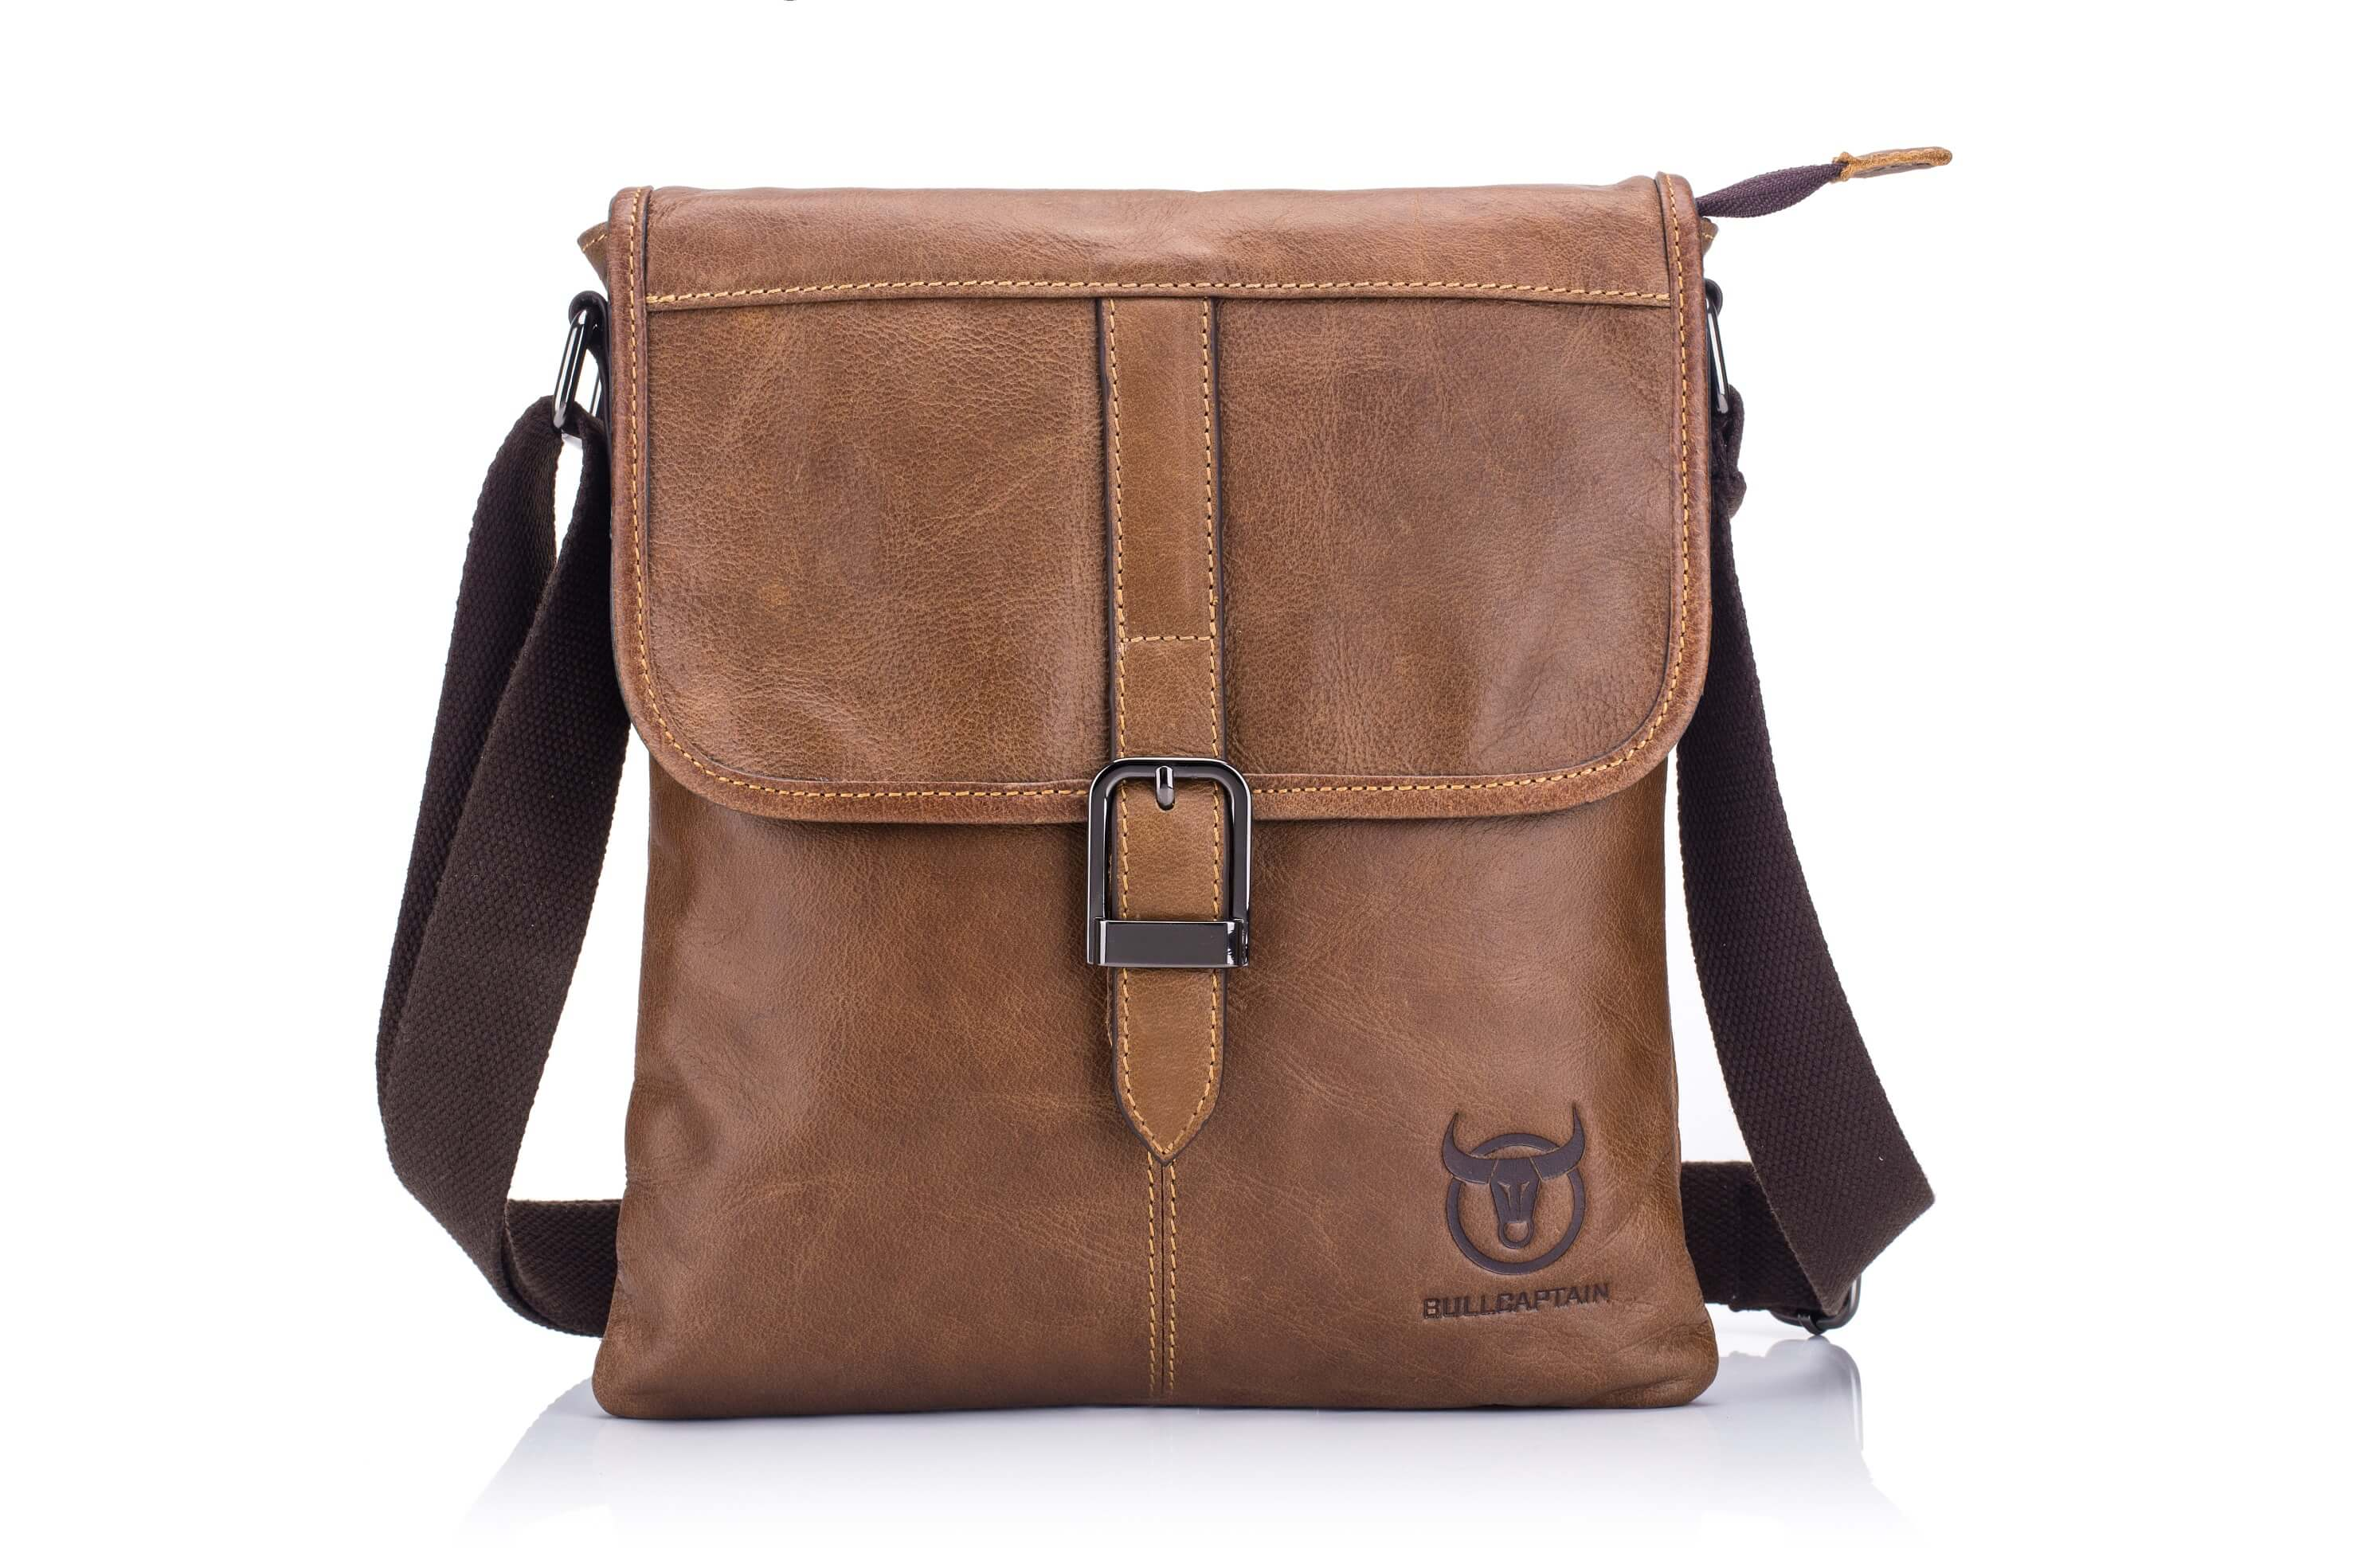 BULLCAPTAIN LEATHER MESSAGER BAG VINTAGE SHOULDER BAG - 034